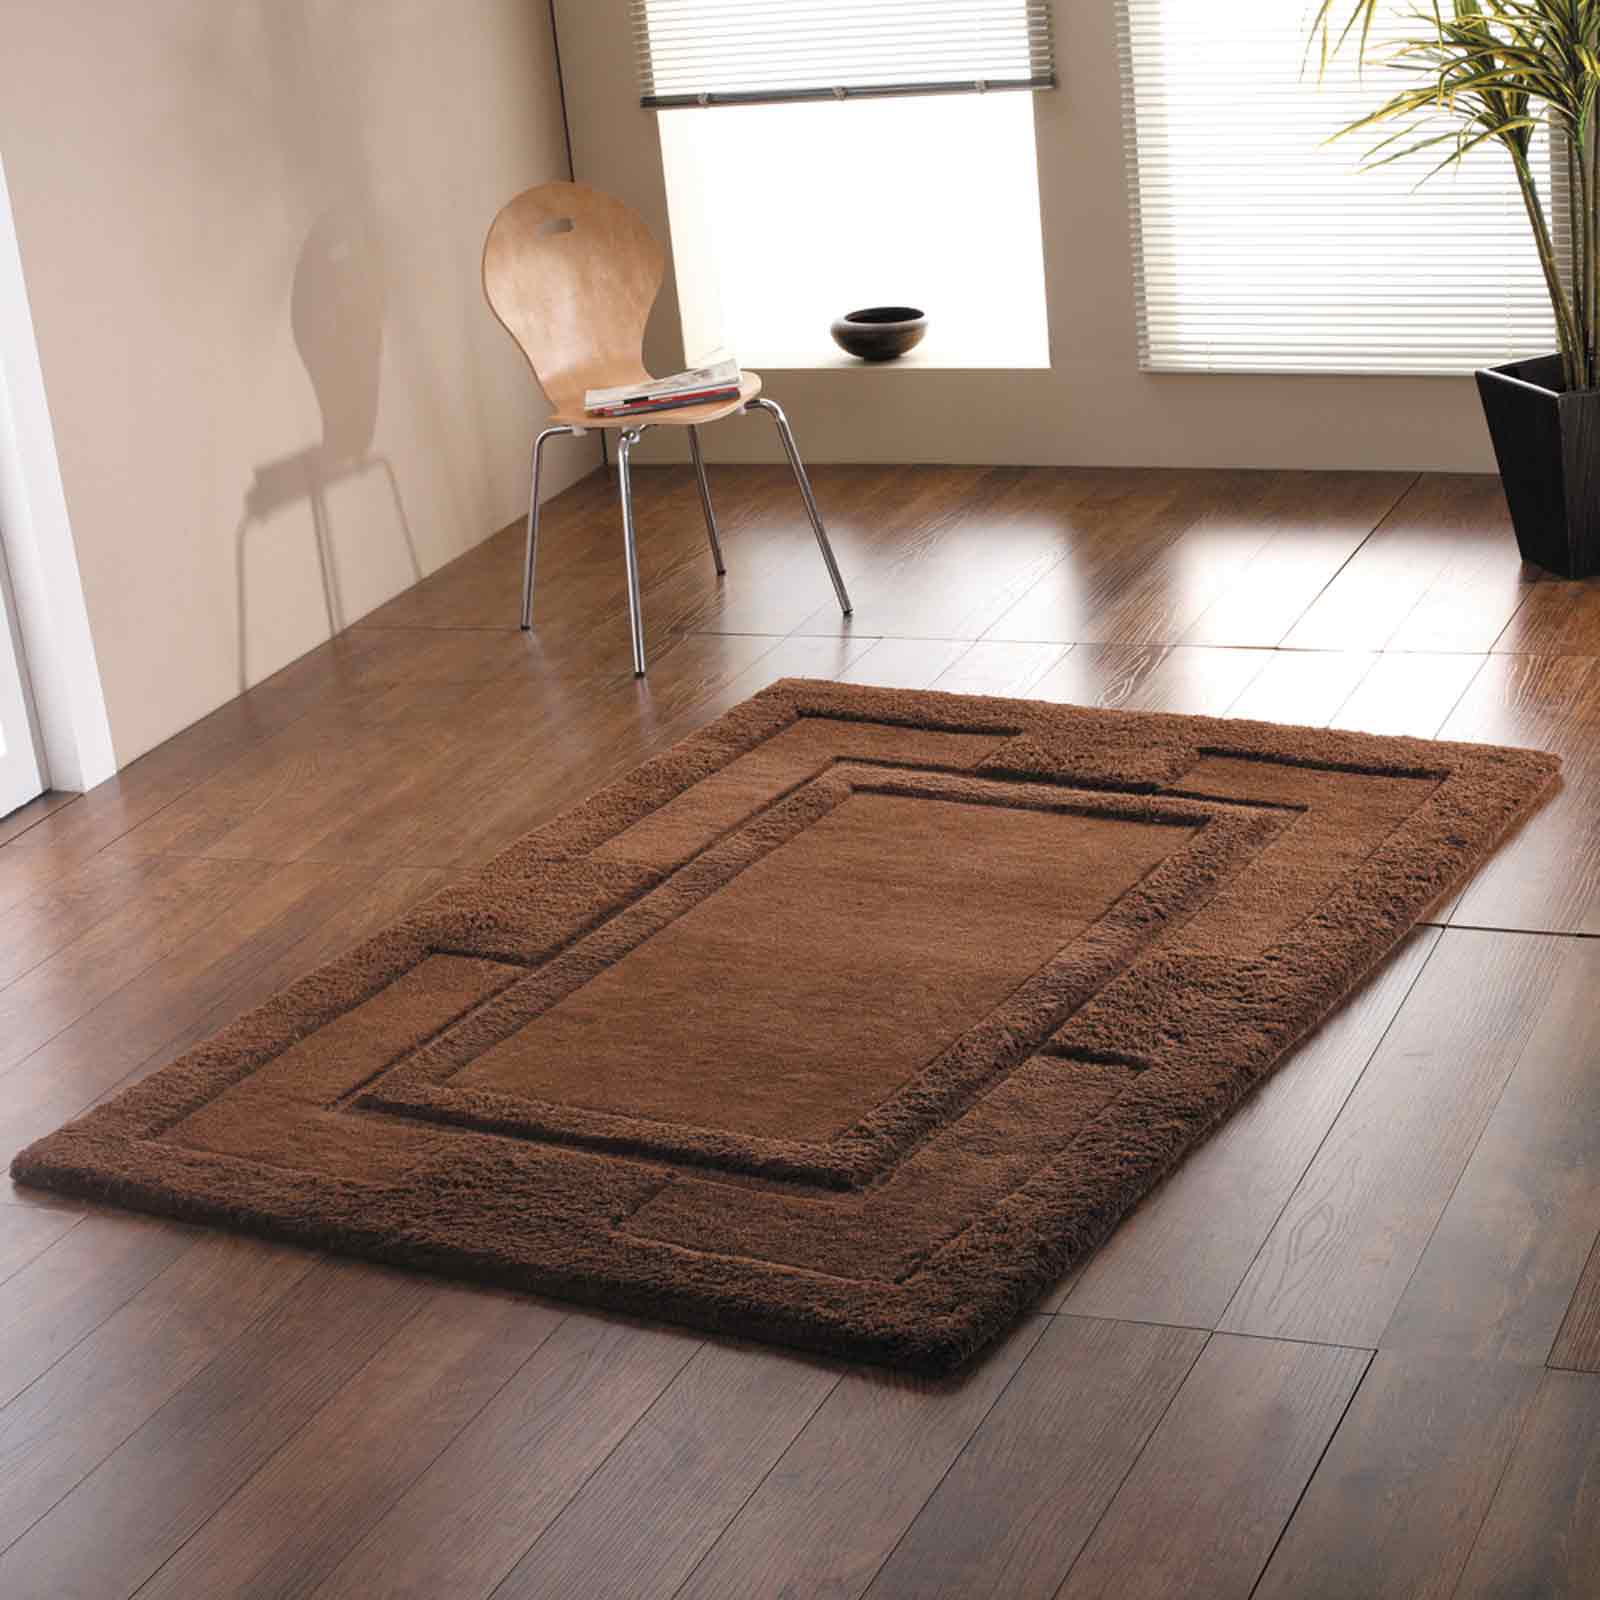 Sierra Apollo Rugs in Chocolate - Pure Wool